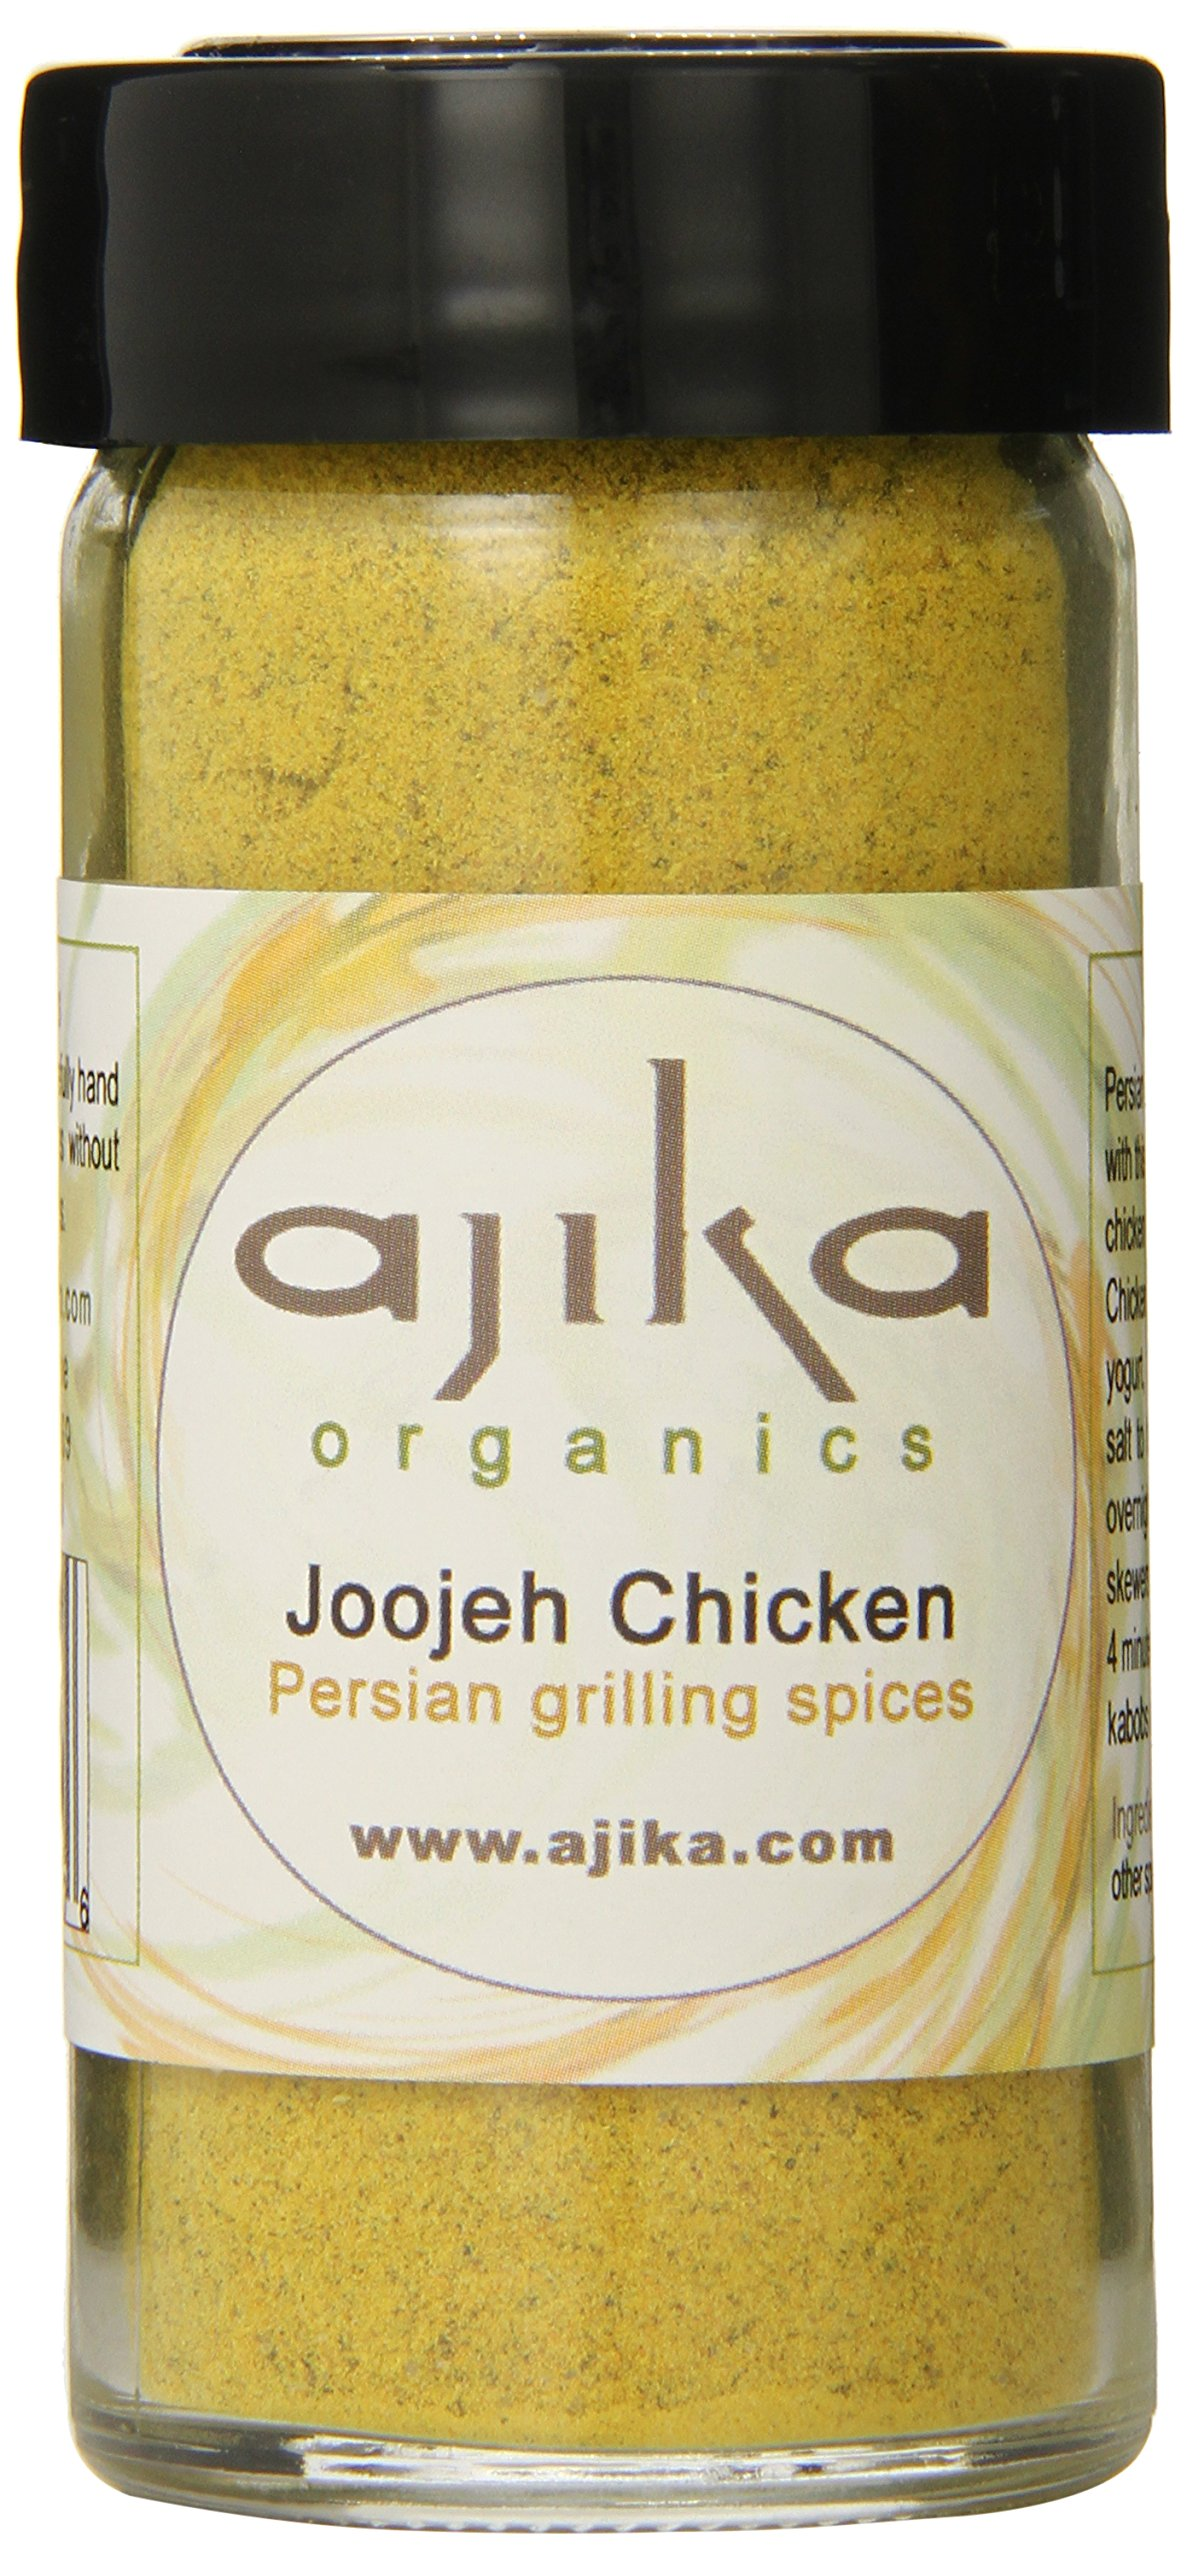 Ajika Organic Joojeh Chicken Grilling Persian spices, 2-Ounce